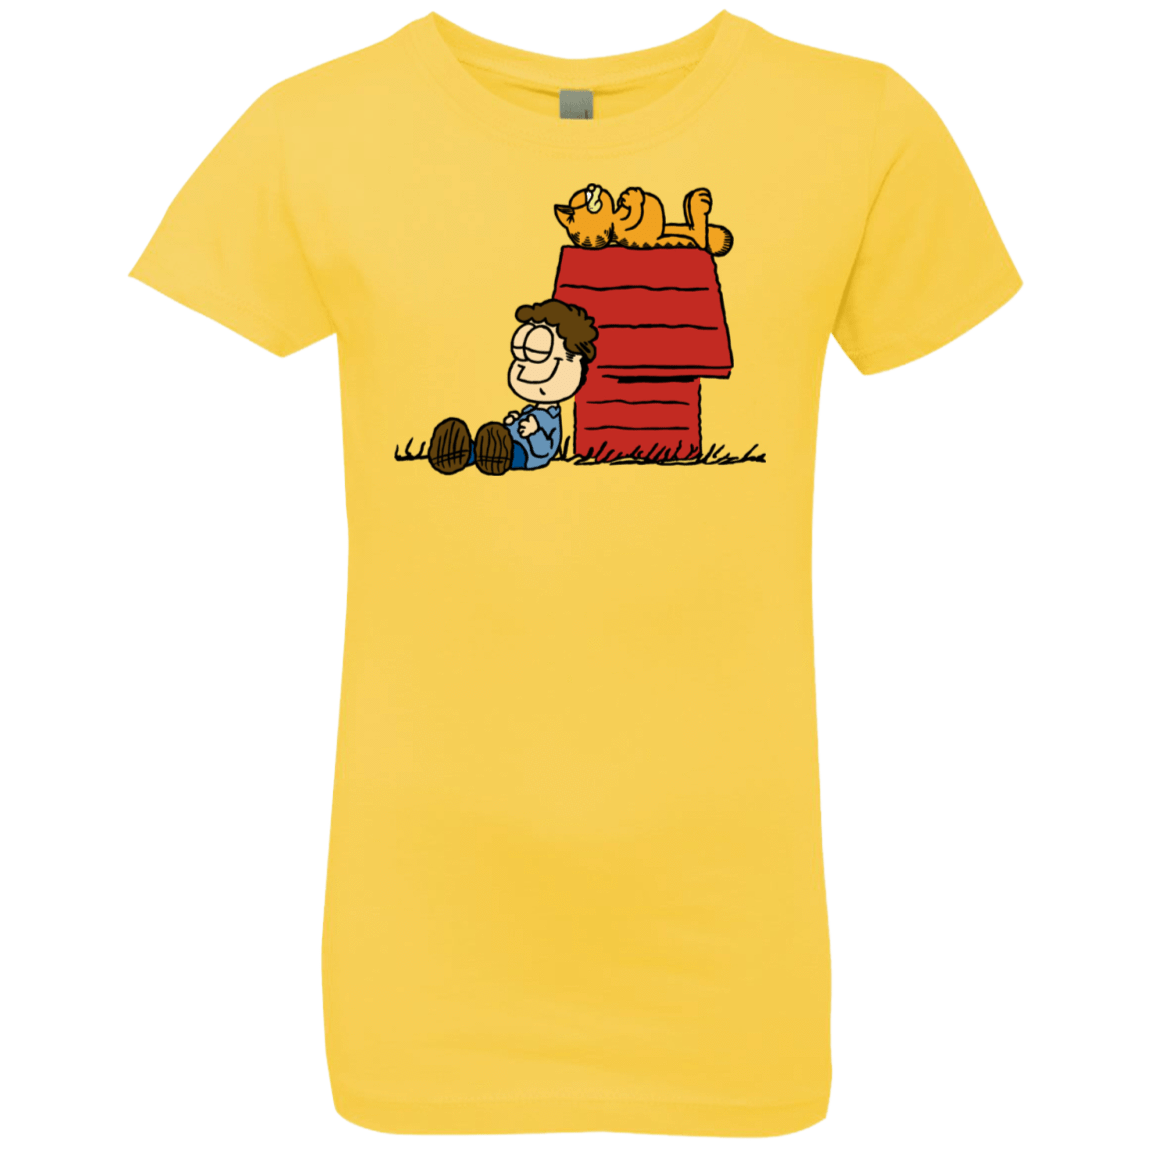 Jon Brown Girls Premium T-Shirt